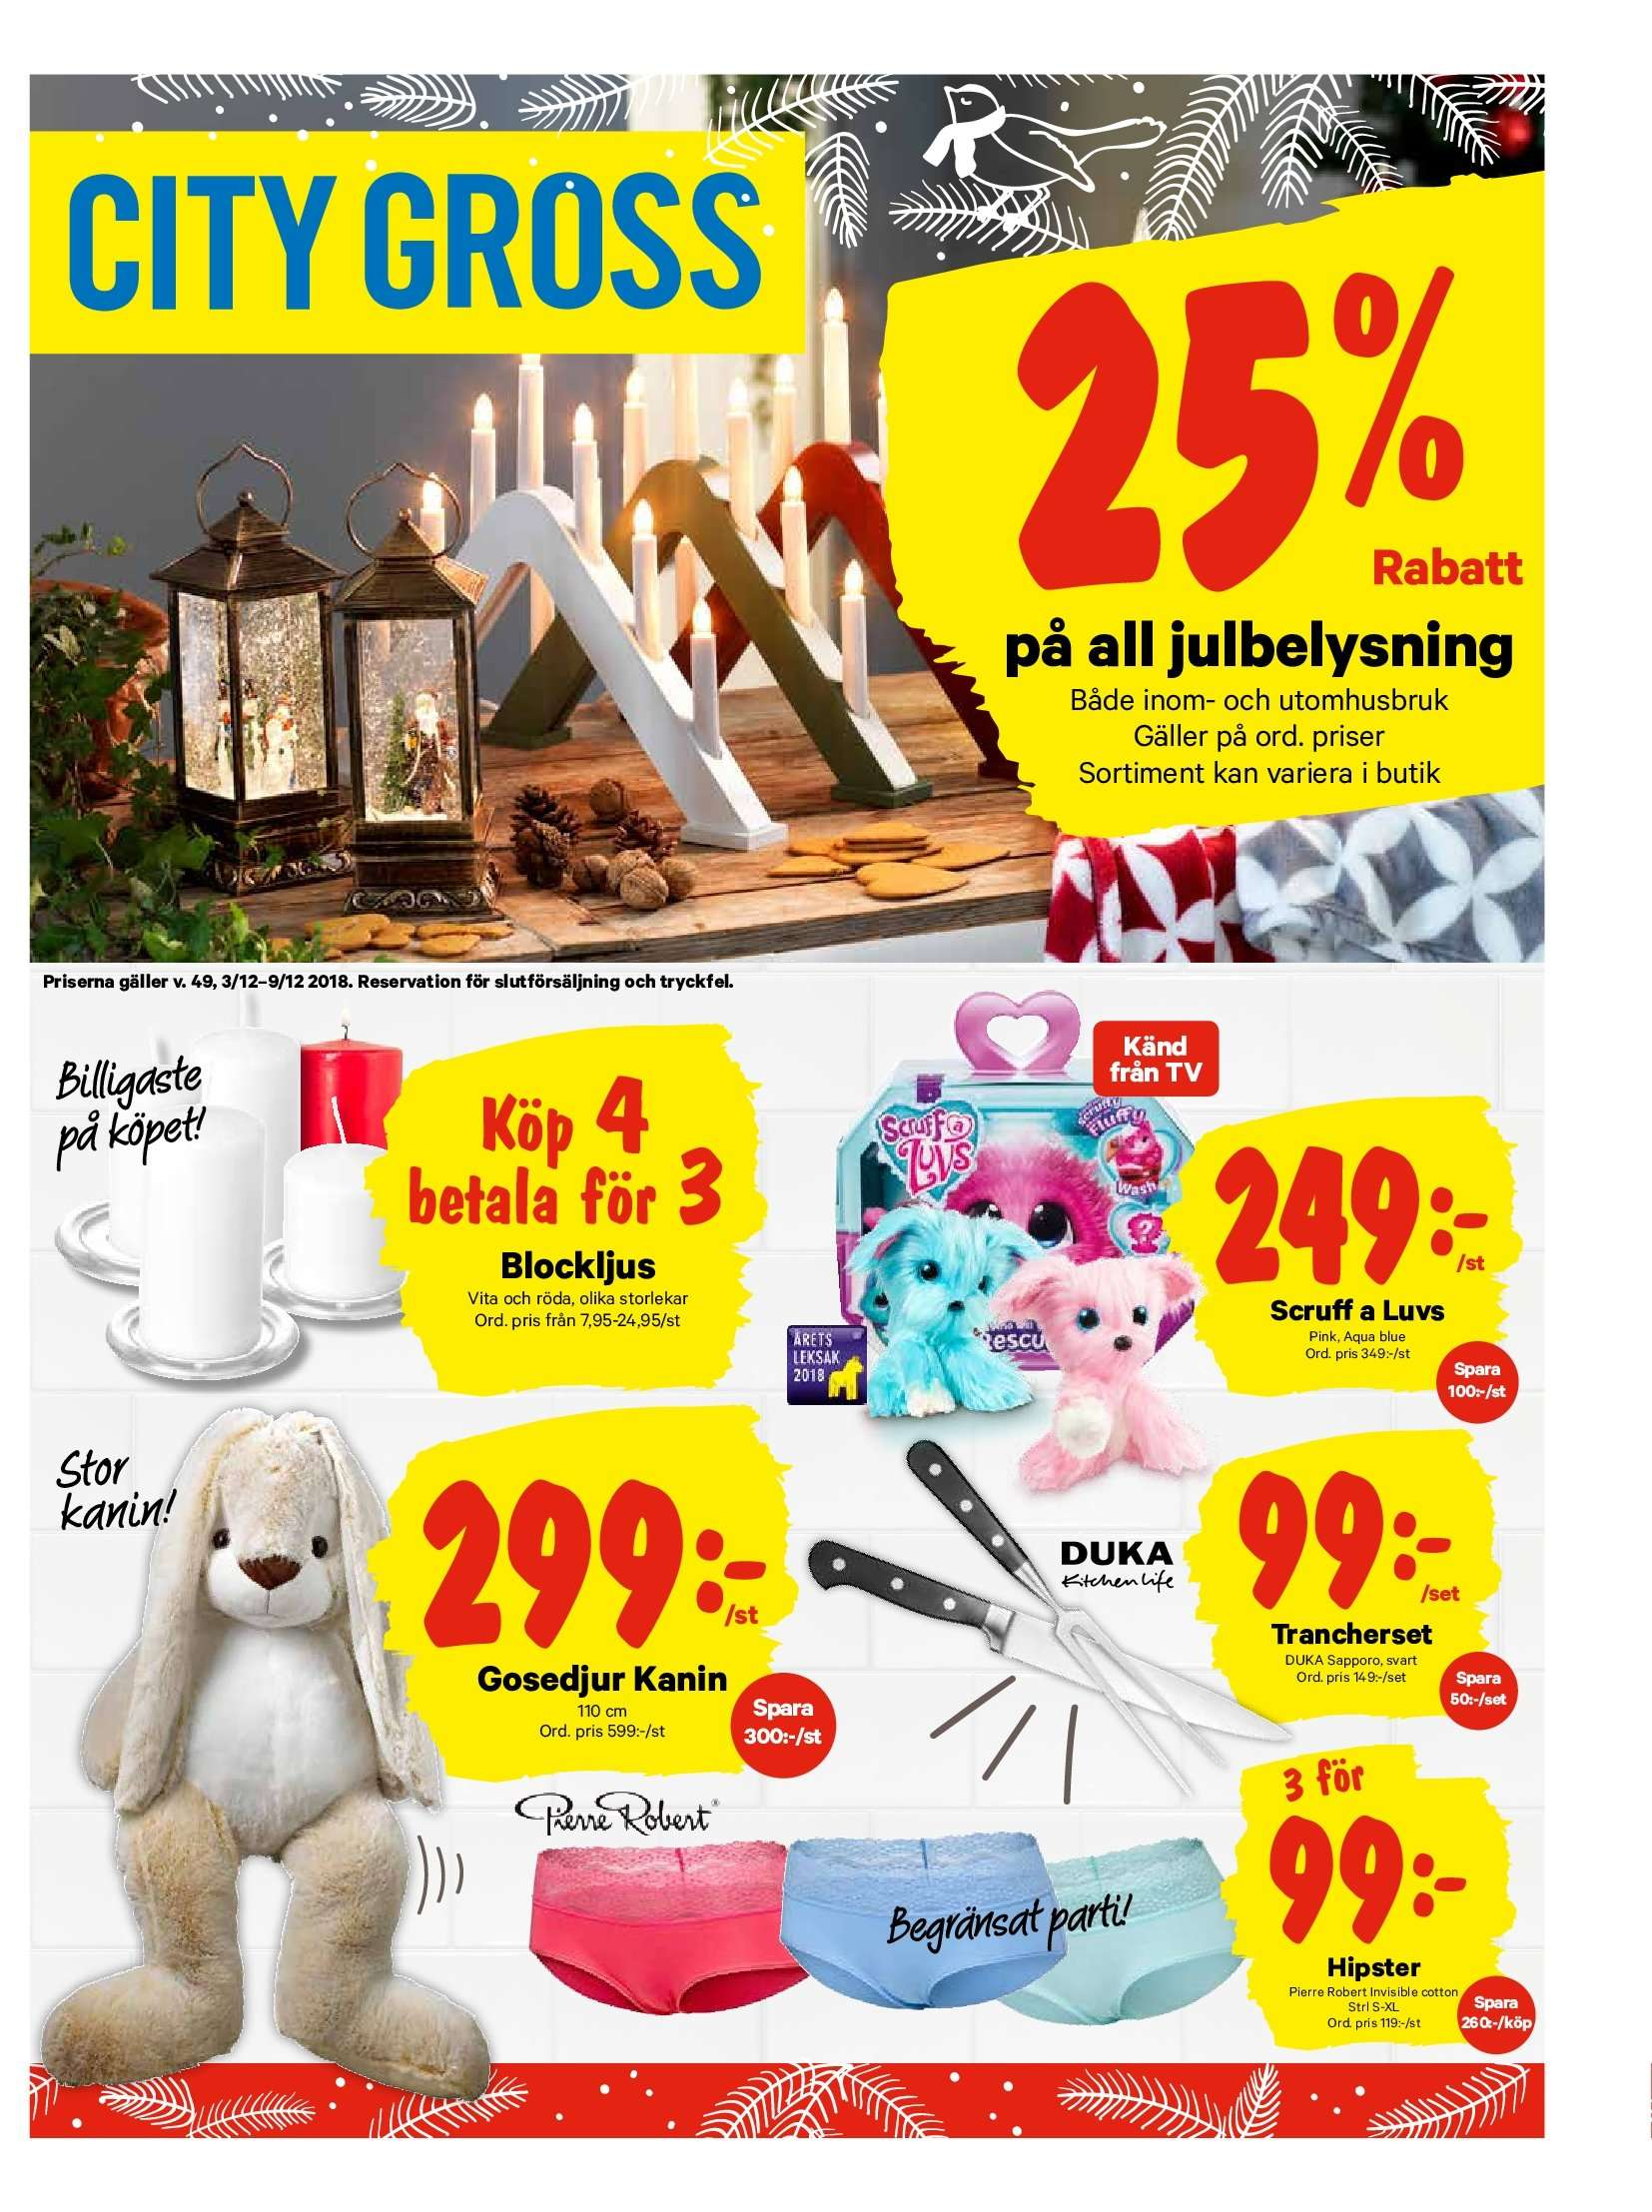 City Gross reklamblad - 3/12 2018 - 9/12 2018. Sida 12.